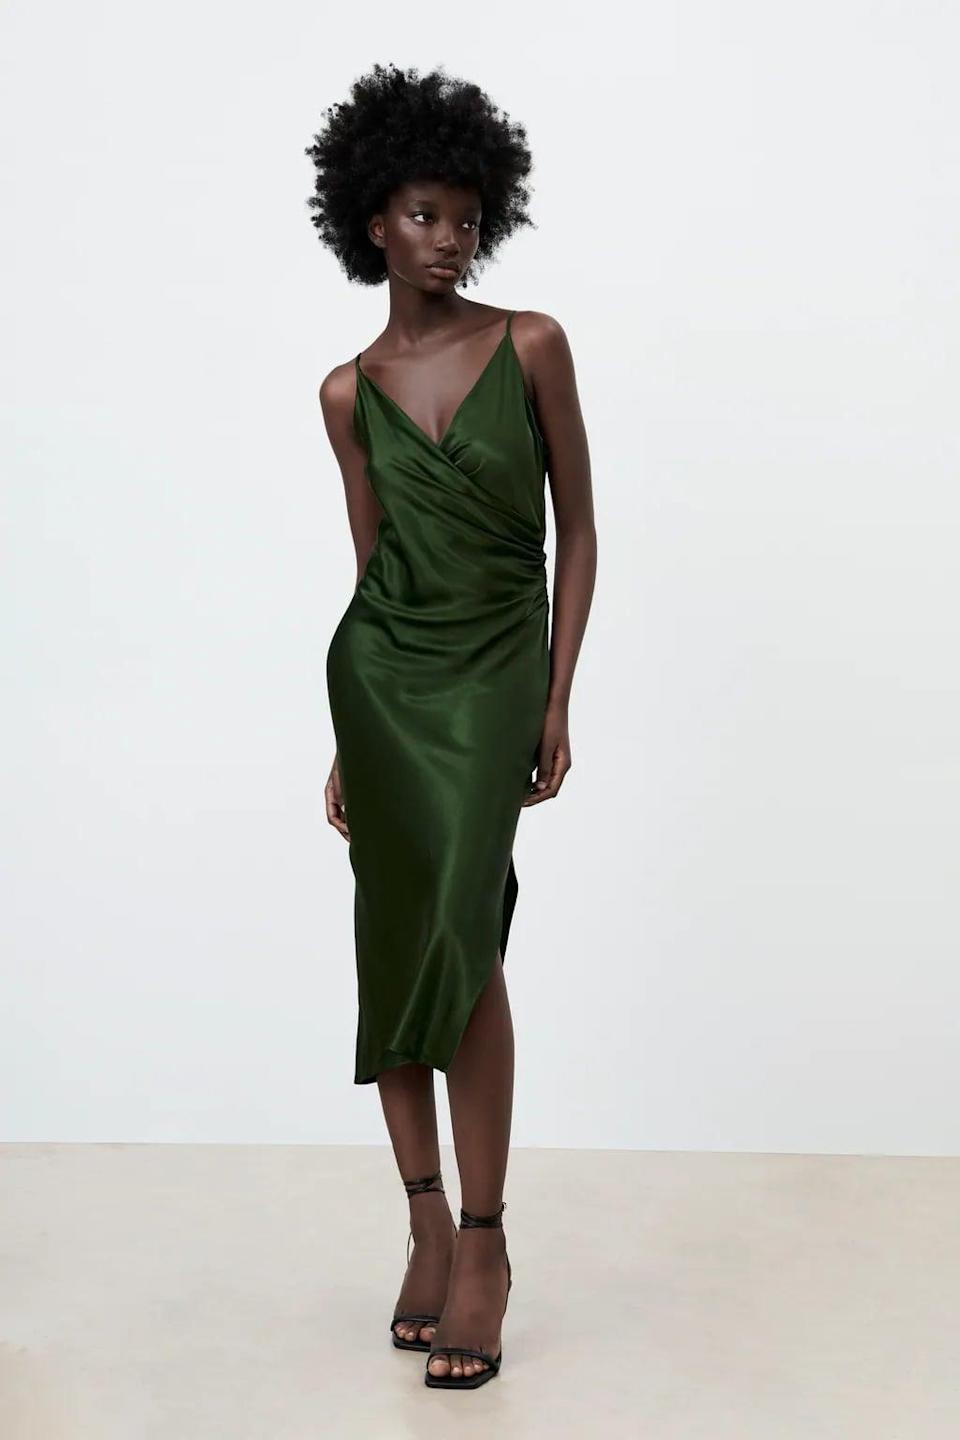 <p>Wear this sexy <span>Zara Draped Lingerie-Style Dress</span> ($50) on date night. It looks chic with heels and lots of layered jewelrt.</p>